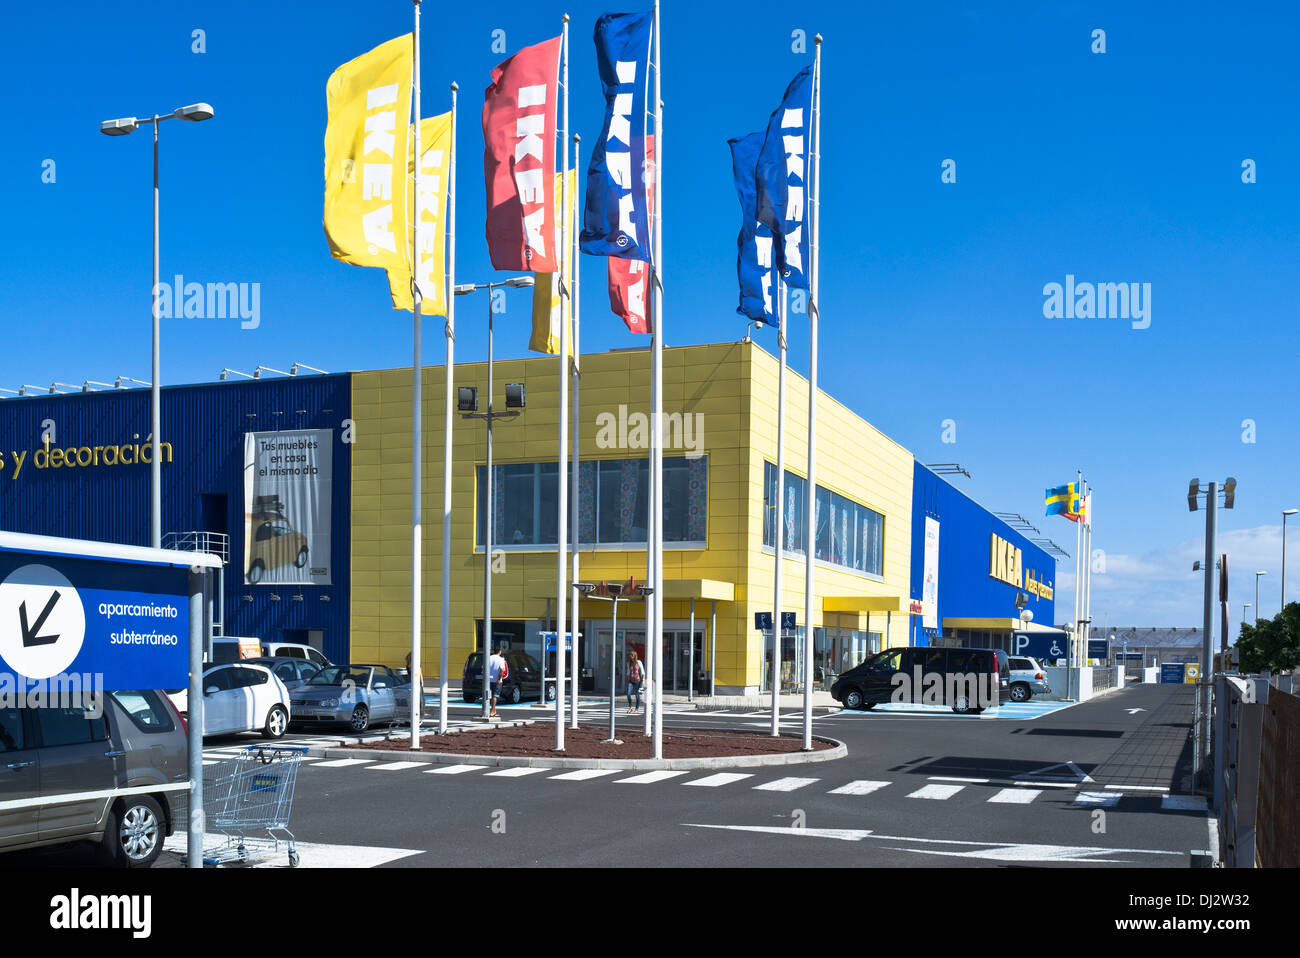 Dh ikea superstore europe ikea car park flags and shop for Ikea store online shopping